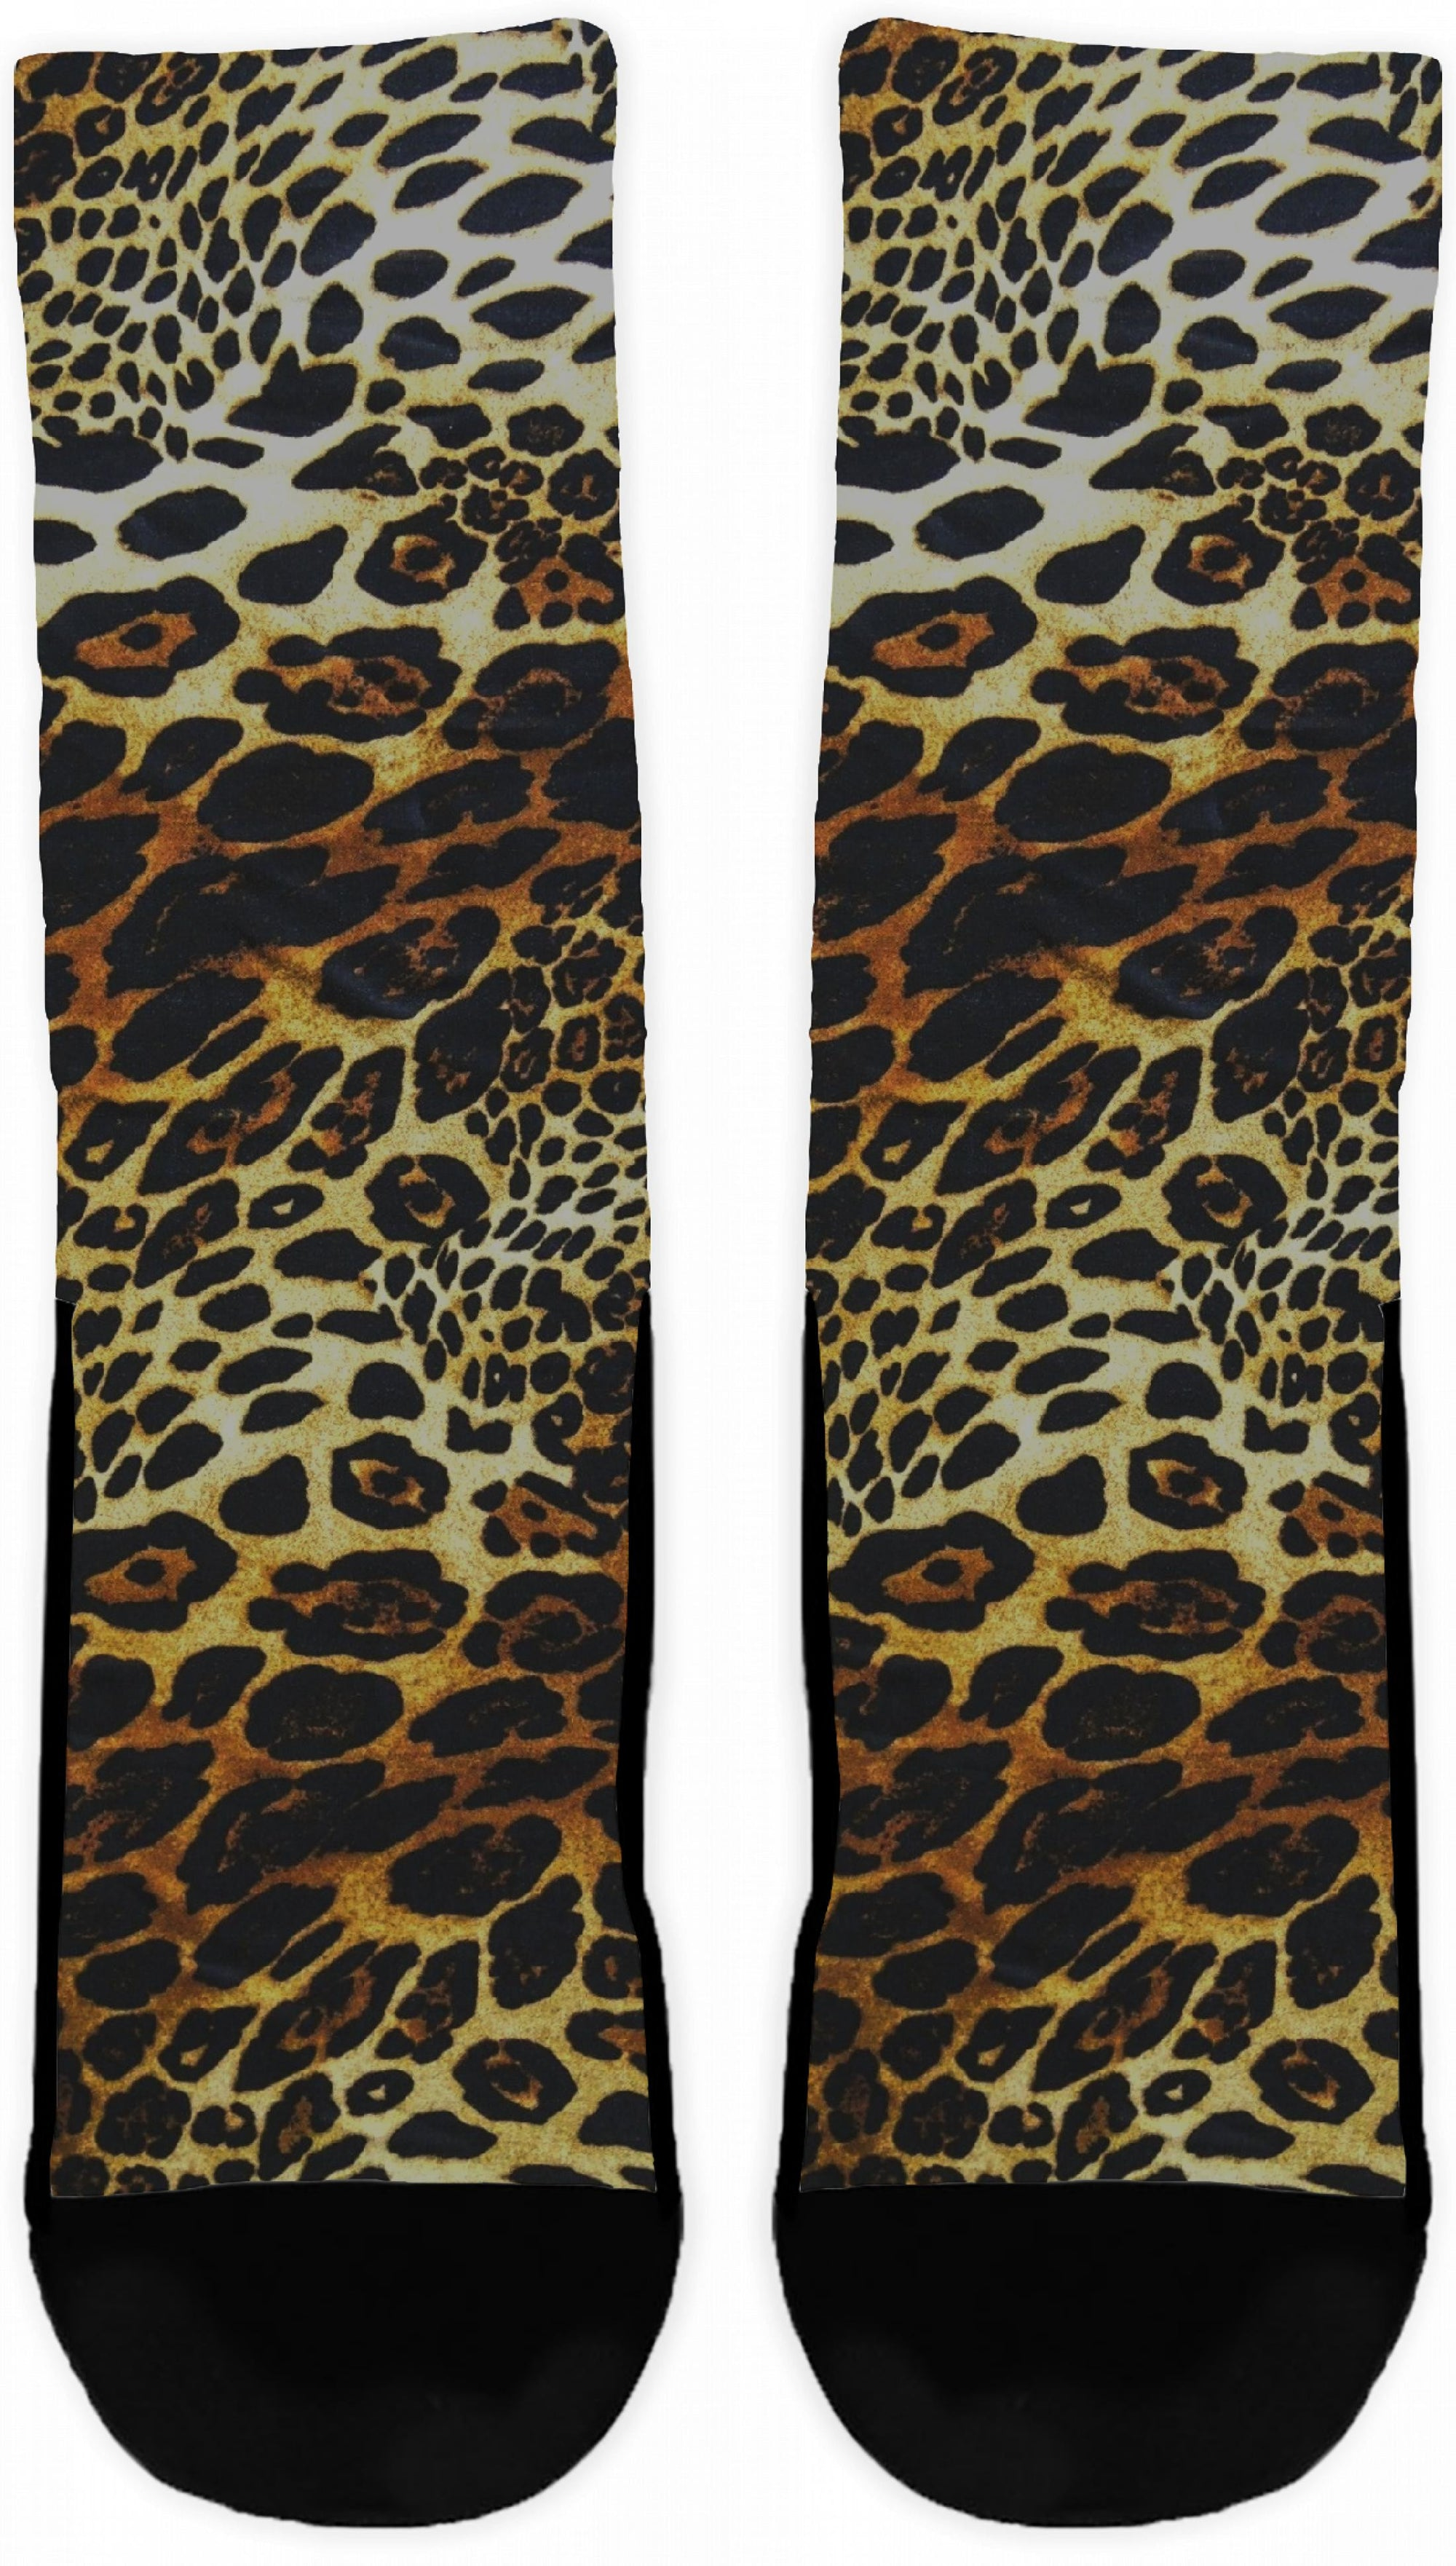 JAGUAR CREW SOCKS